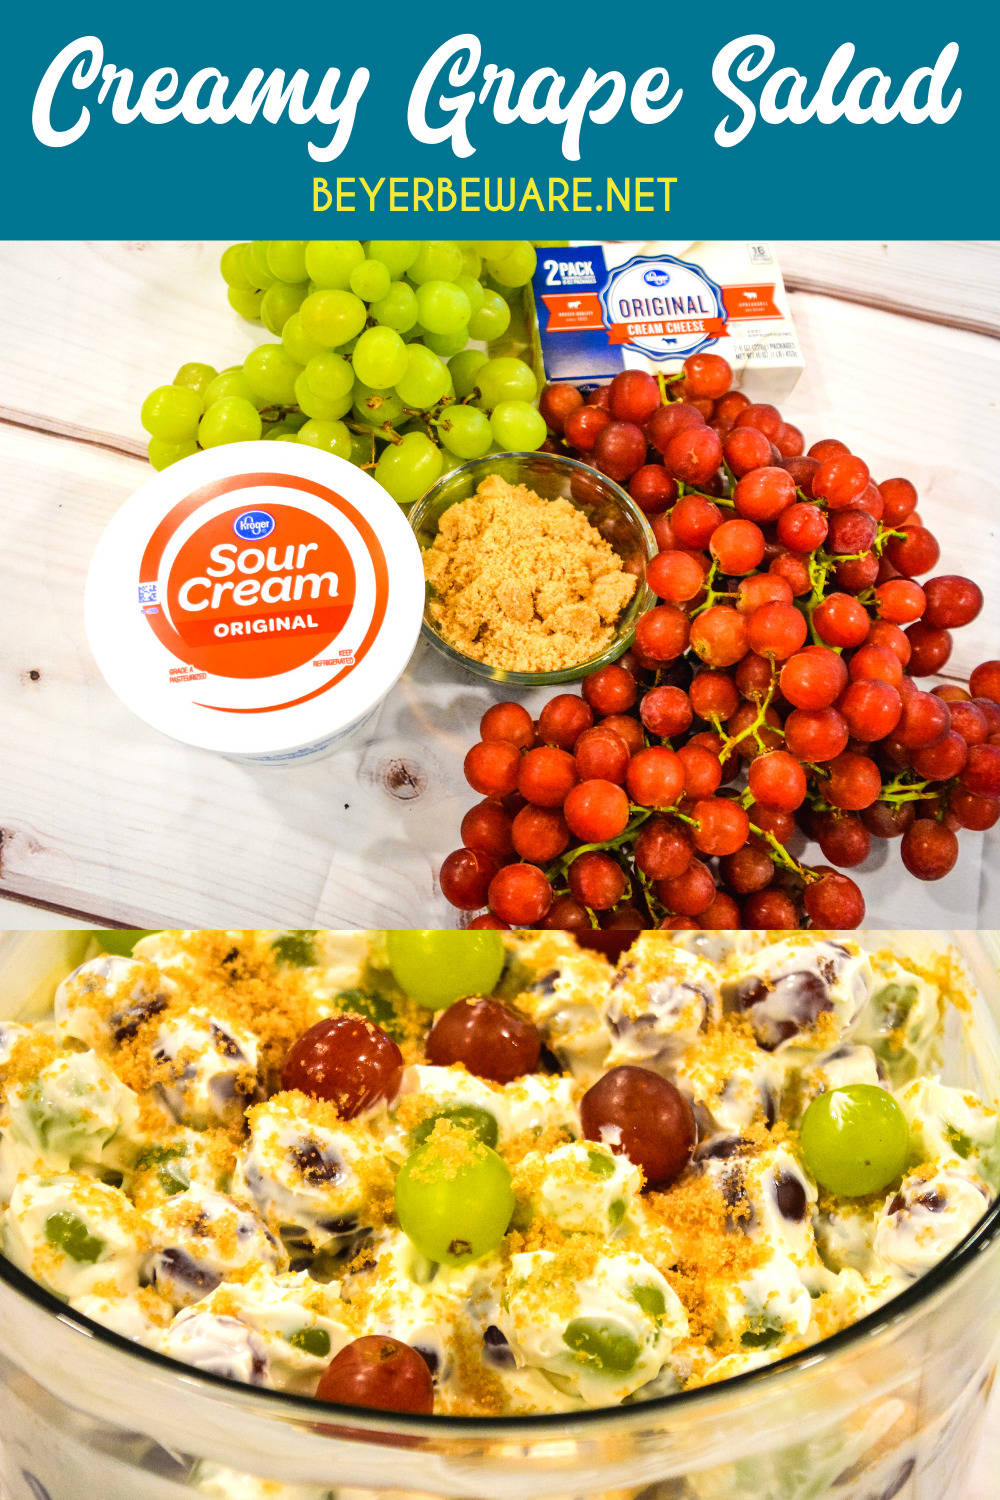 Creamy grape salad is an easy 5-ingredient fruit salad recipe made with red and green grapes, cream cheese, sour cream, and brown sugar.